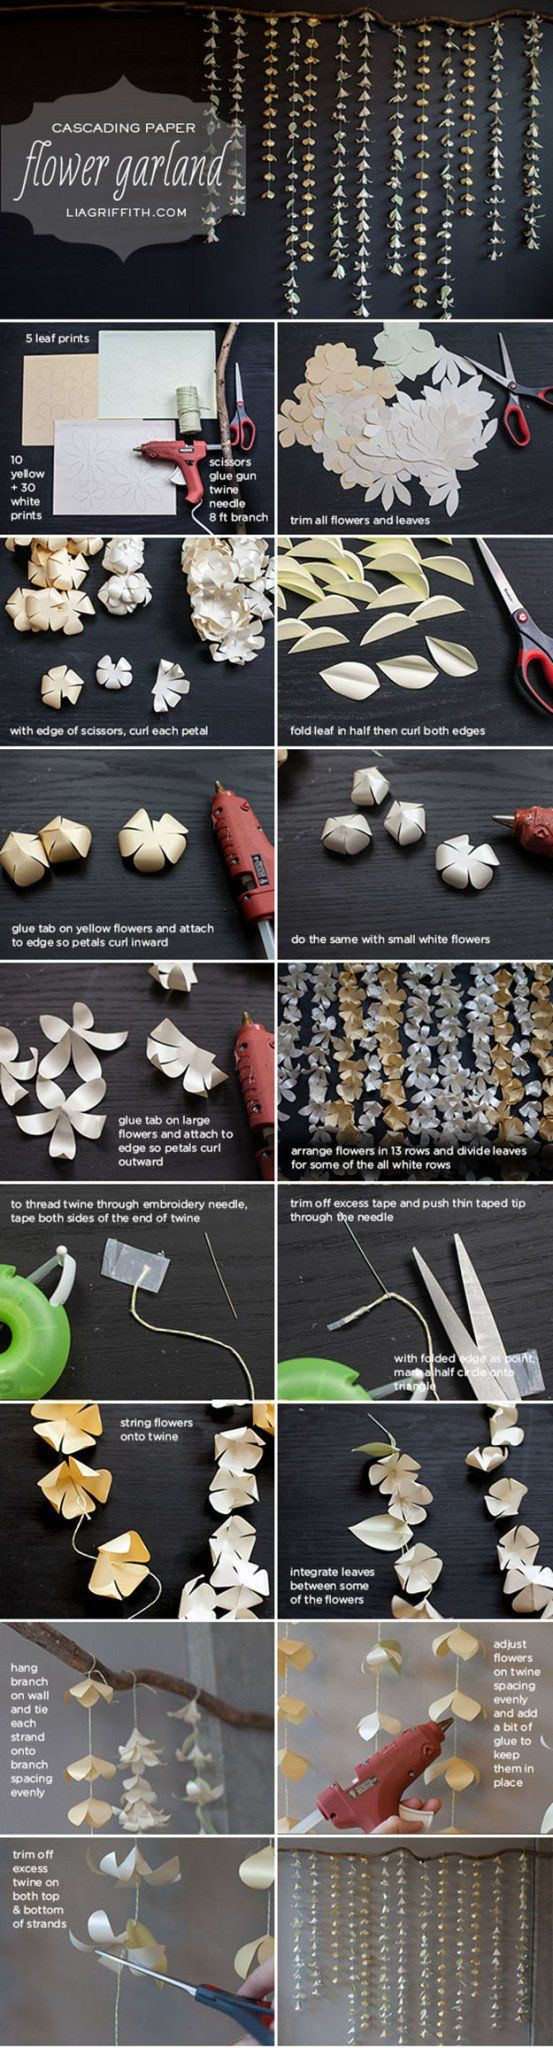 Cool DIY Crafts for Spring  Homemade crafts Craft and DIY ideas